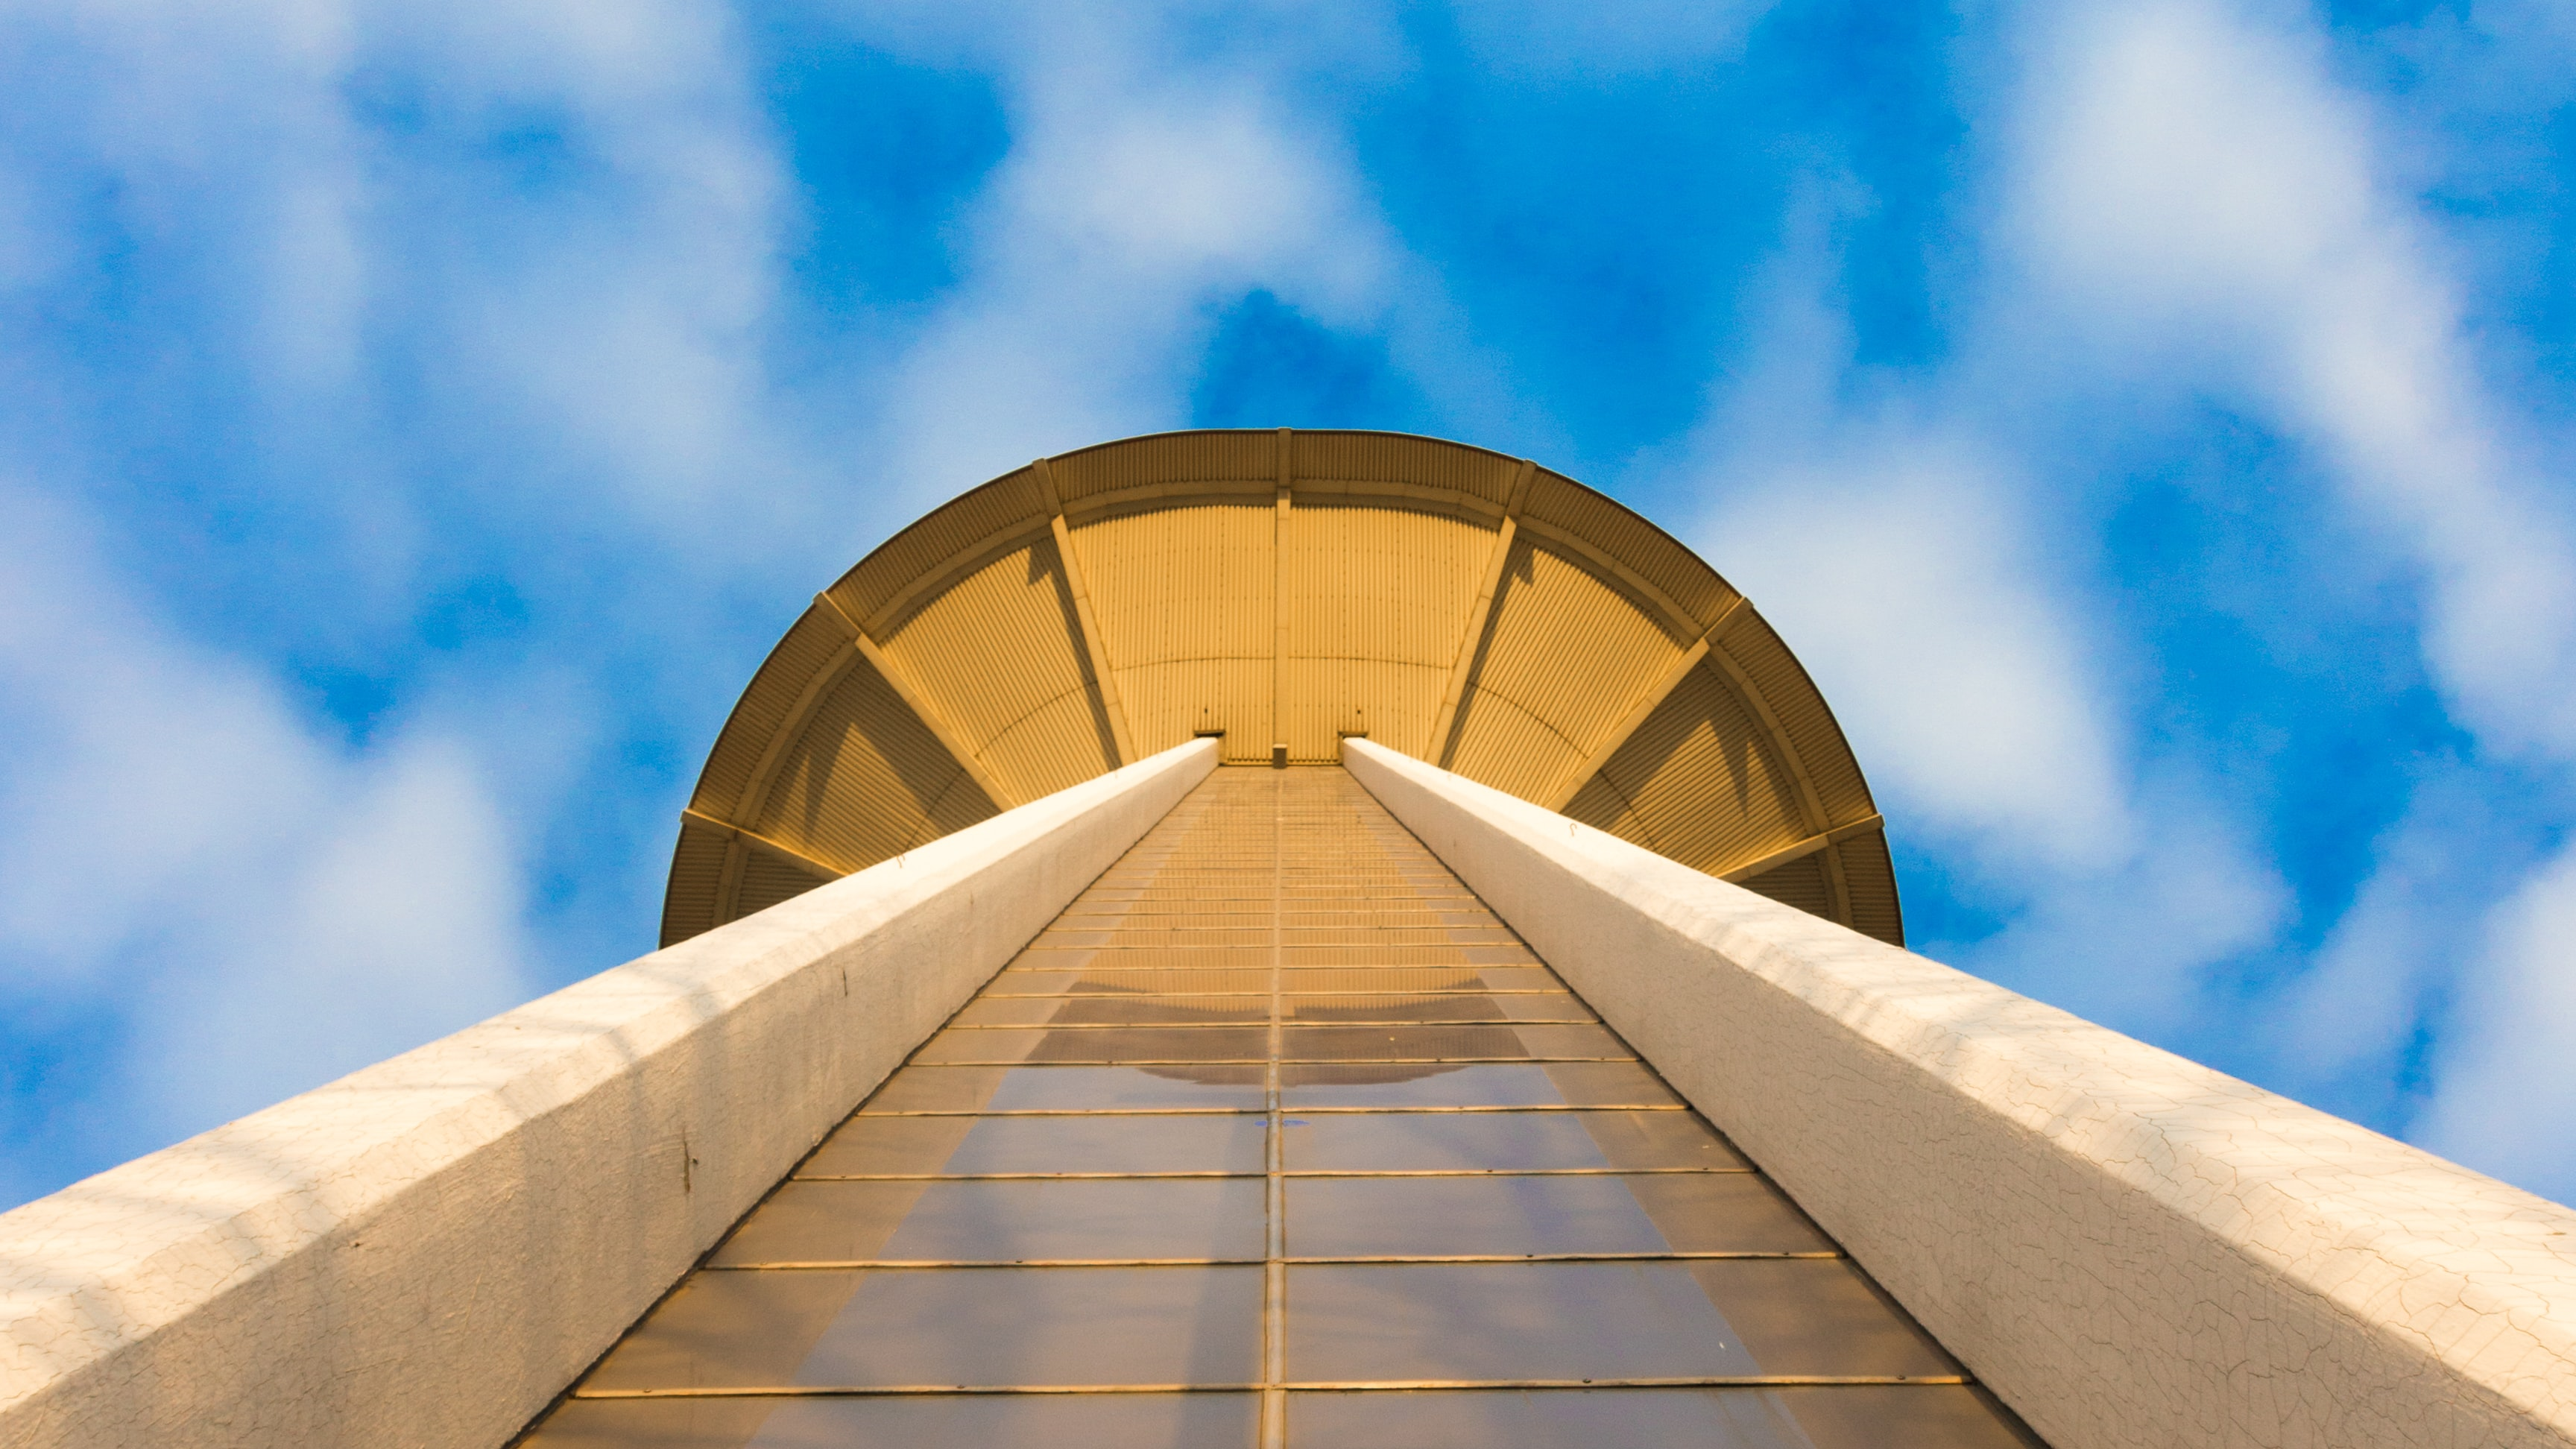 worm's eye view photography of tower under cloudy sky during daytime